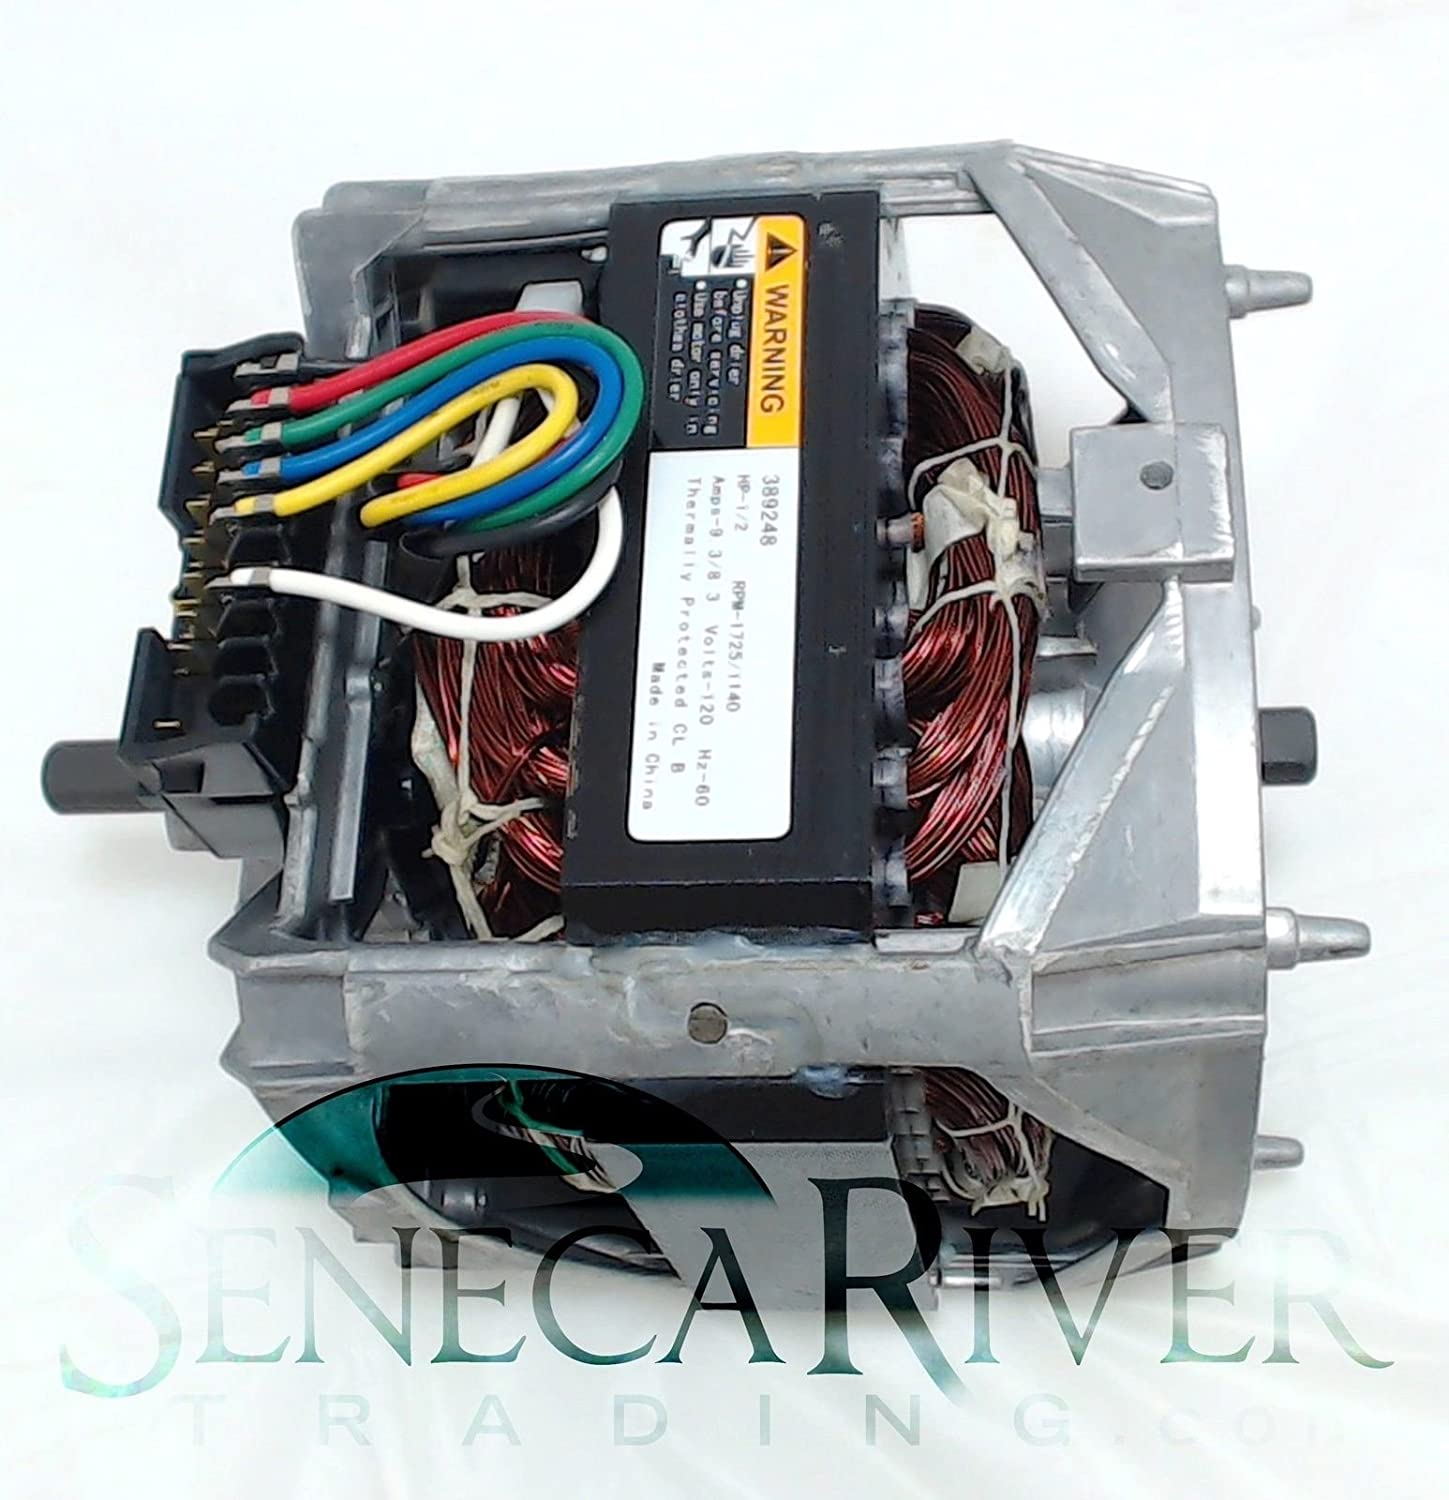 B01M7RALI3 Seneca River Trading Washing Machine Motor for Whirlpool, AP6010250, PS11743427, 389248, WP661600 71WMiaZ6NaL._SL1500_